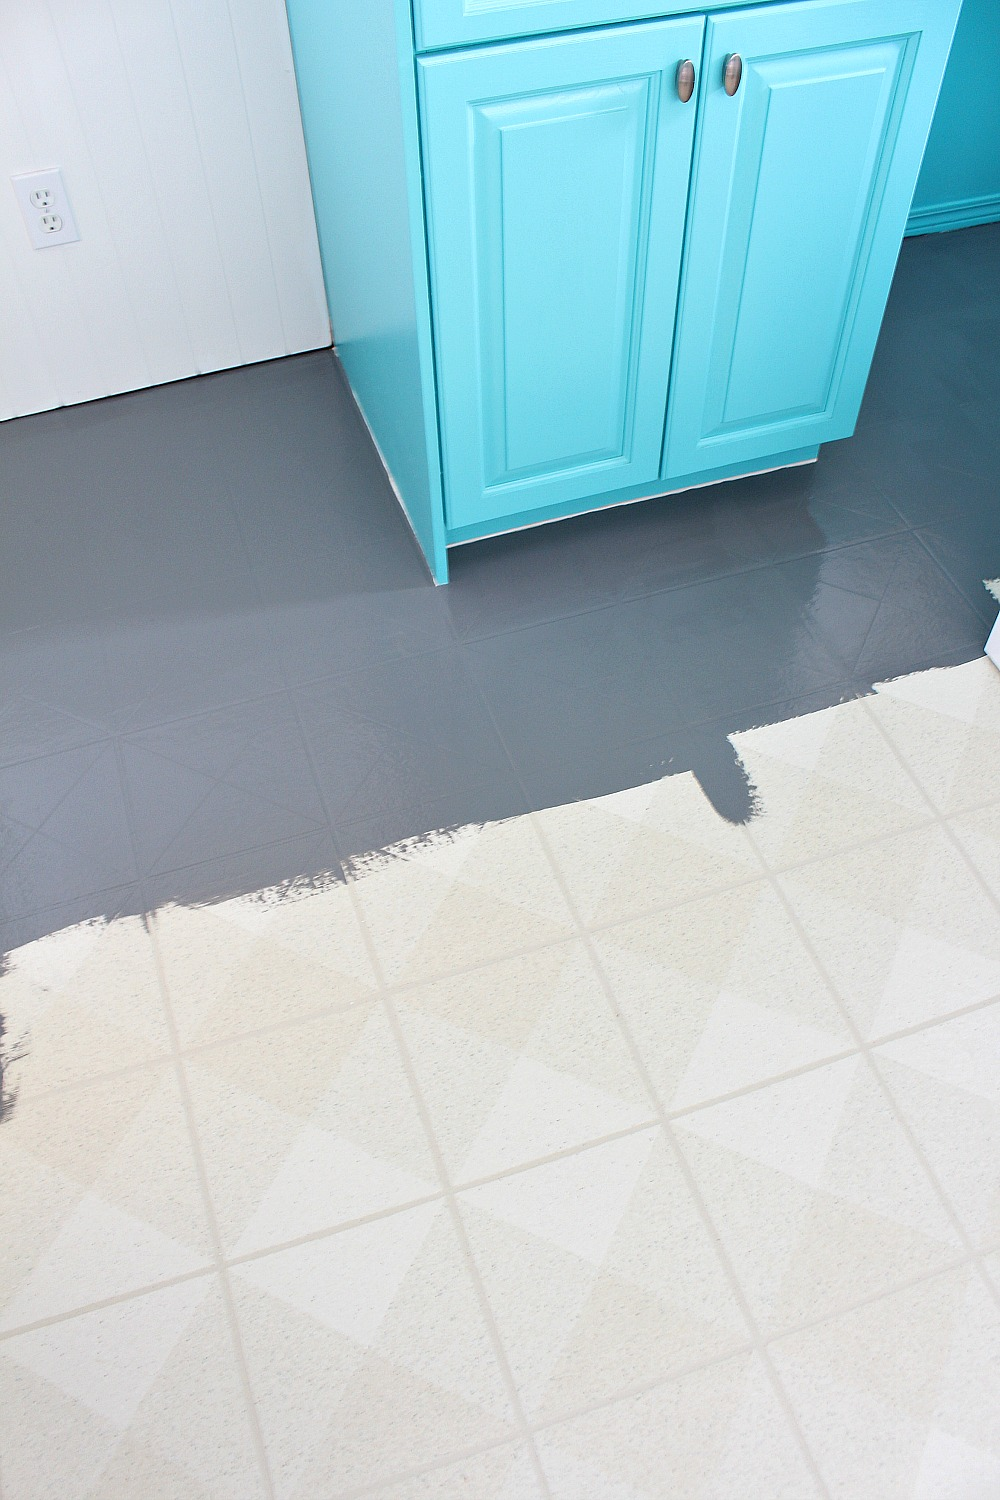 How to paint a vinyl floor diy painted floors dans le lakehouse how to paint a vinyl floor dailygadgetfo Images